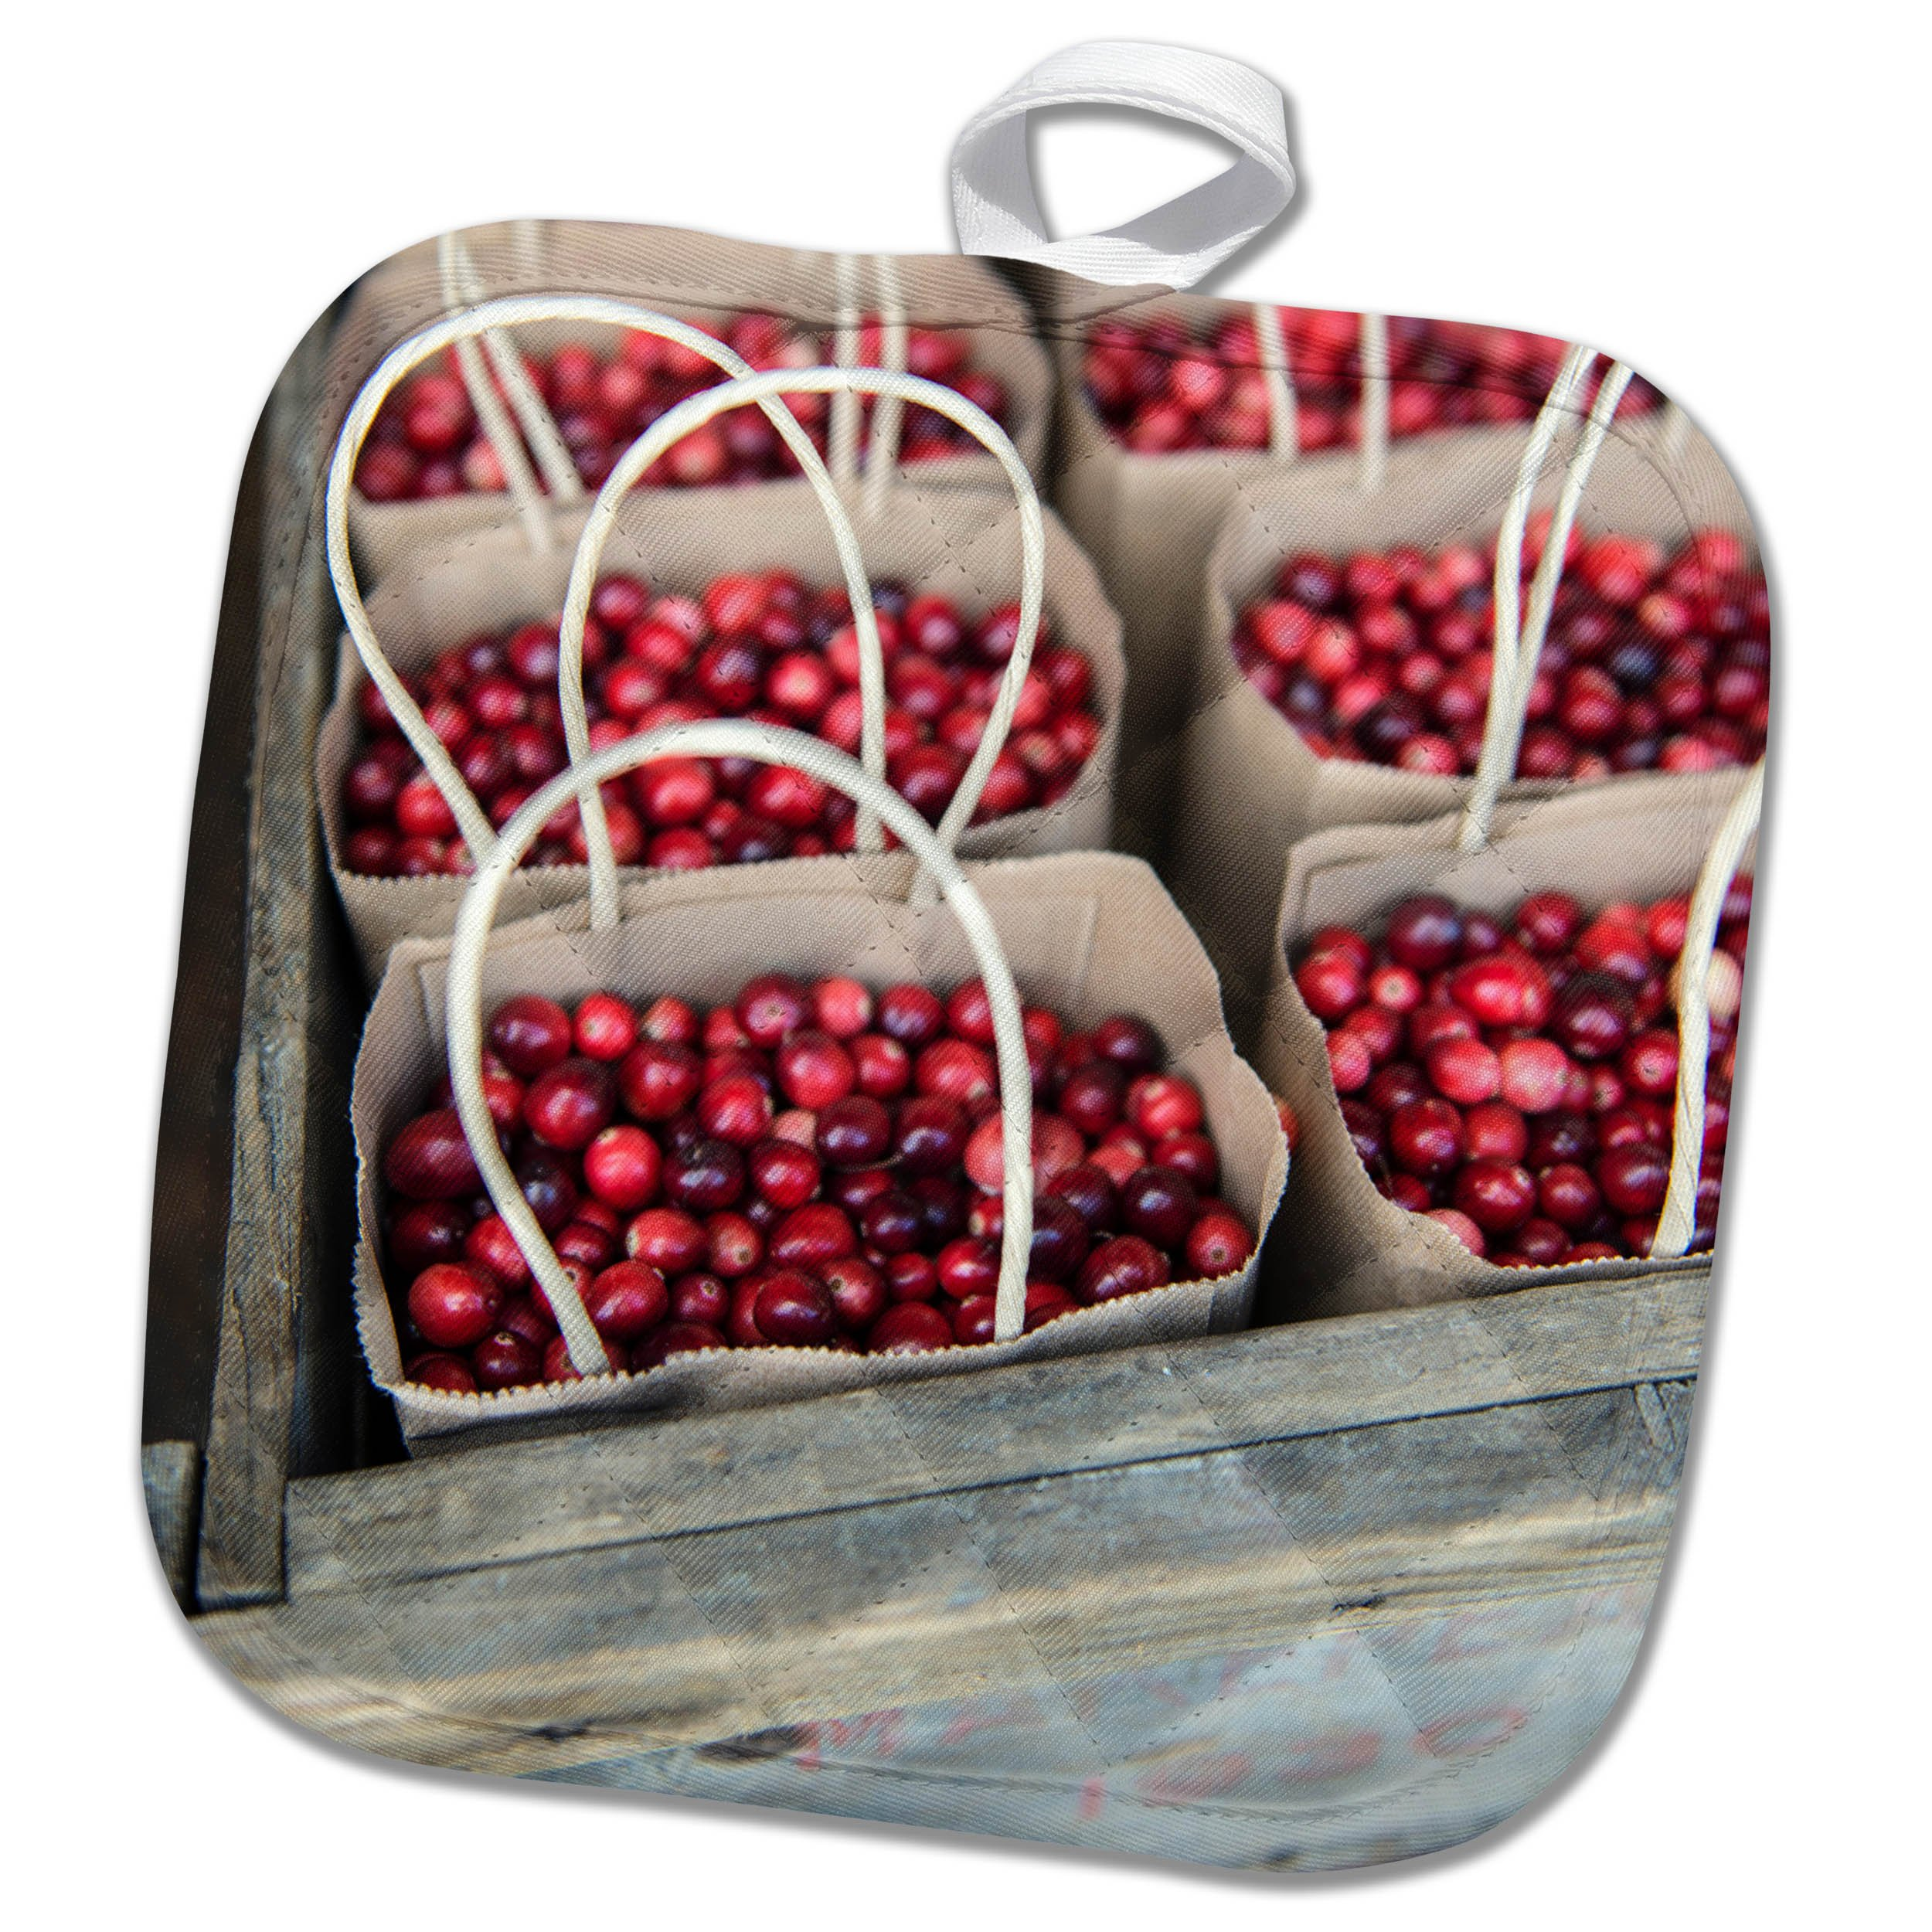 3dRose Danita Delimont - Food - USA, Massachusetts, Wareham, cranberries packaged for sale - 8x8 Potholder (phl_259425_1)